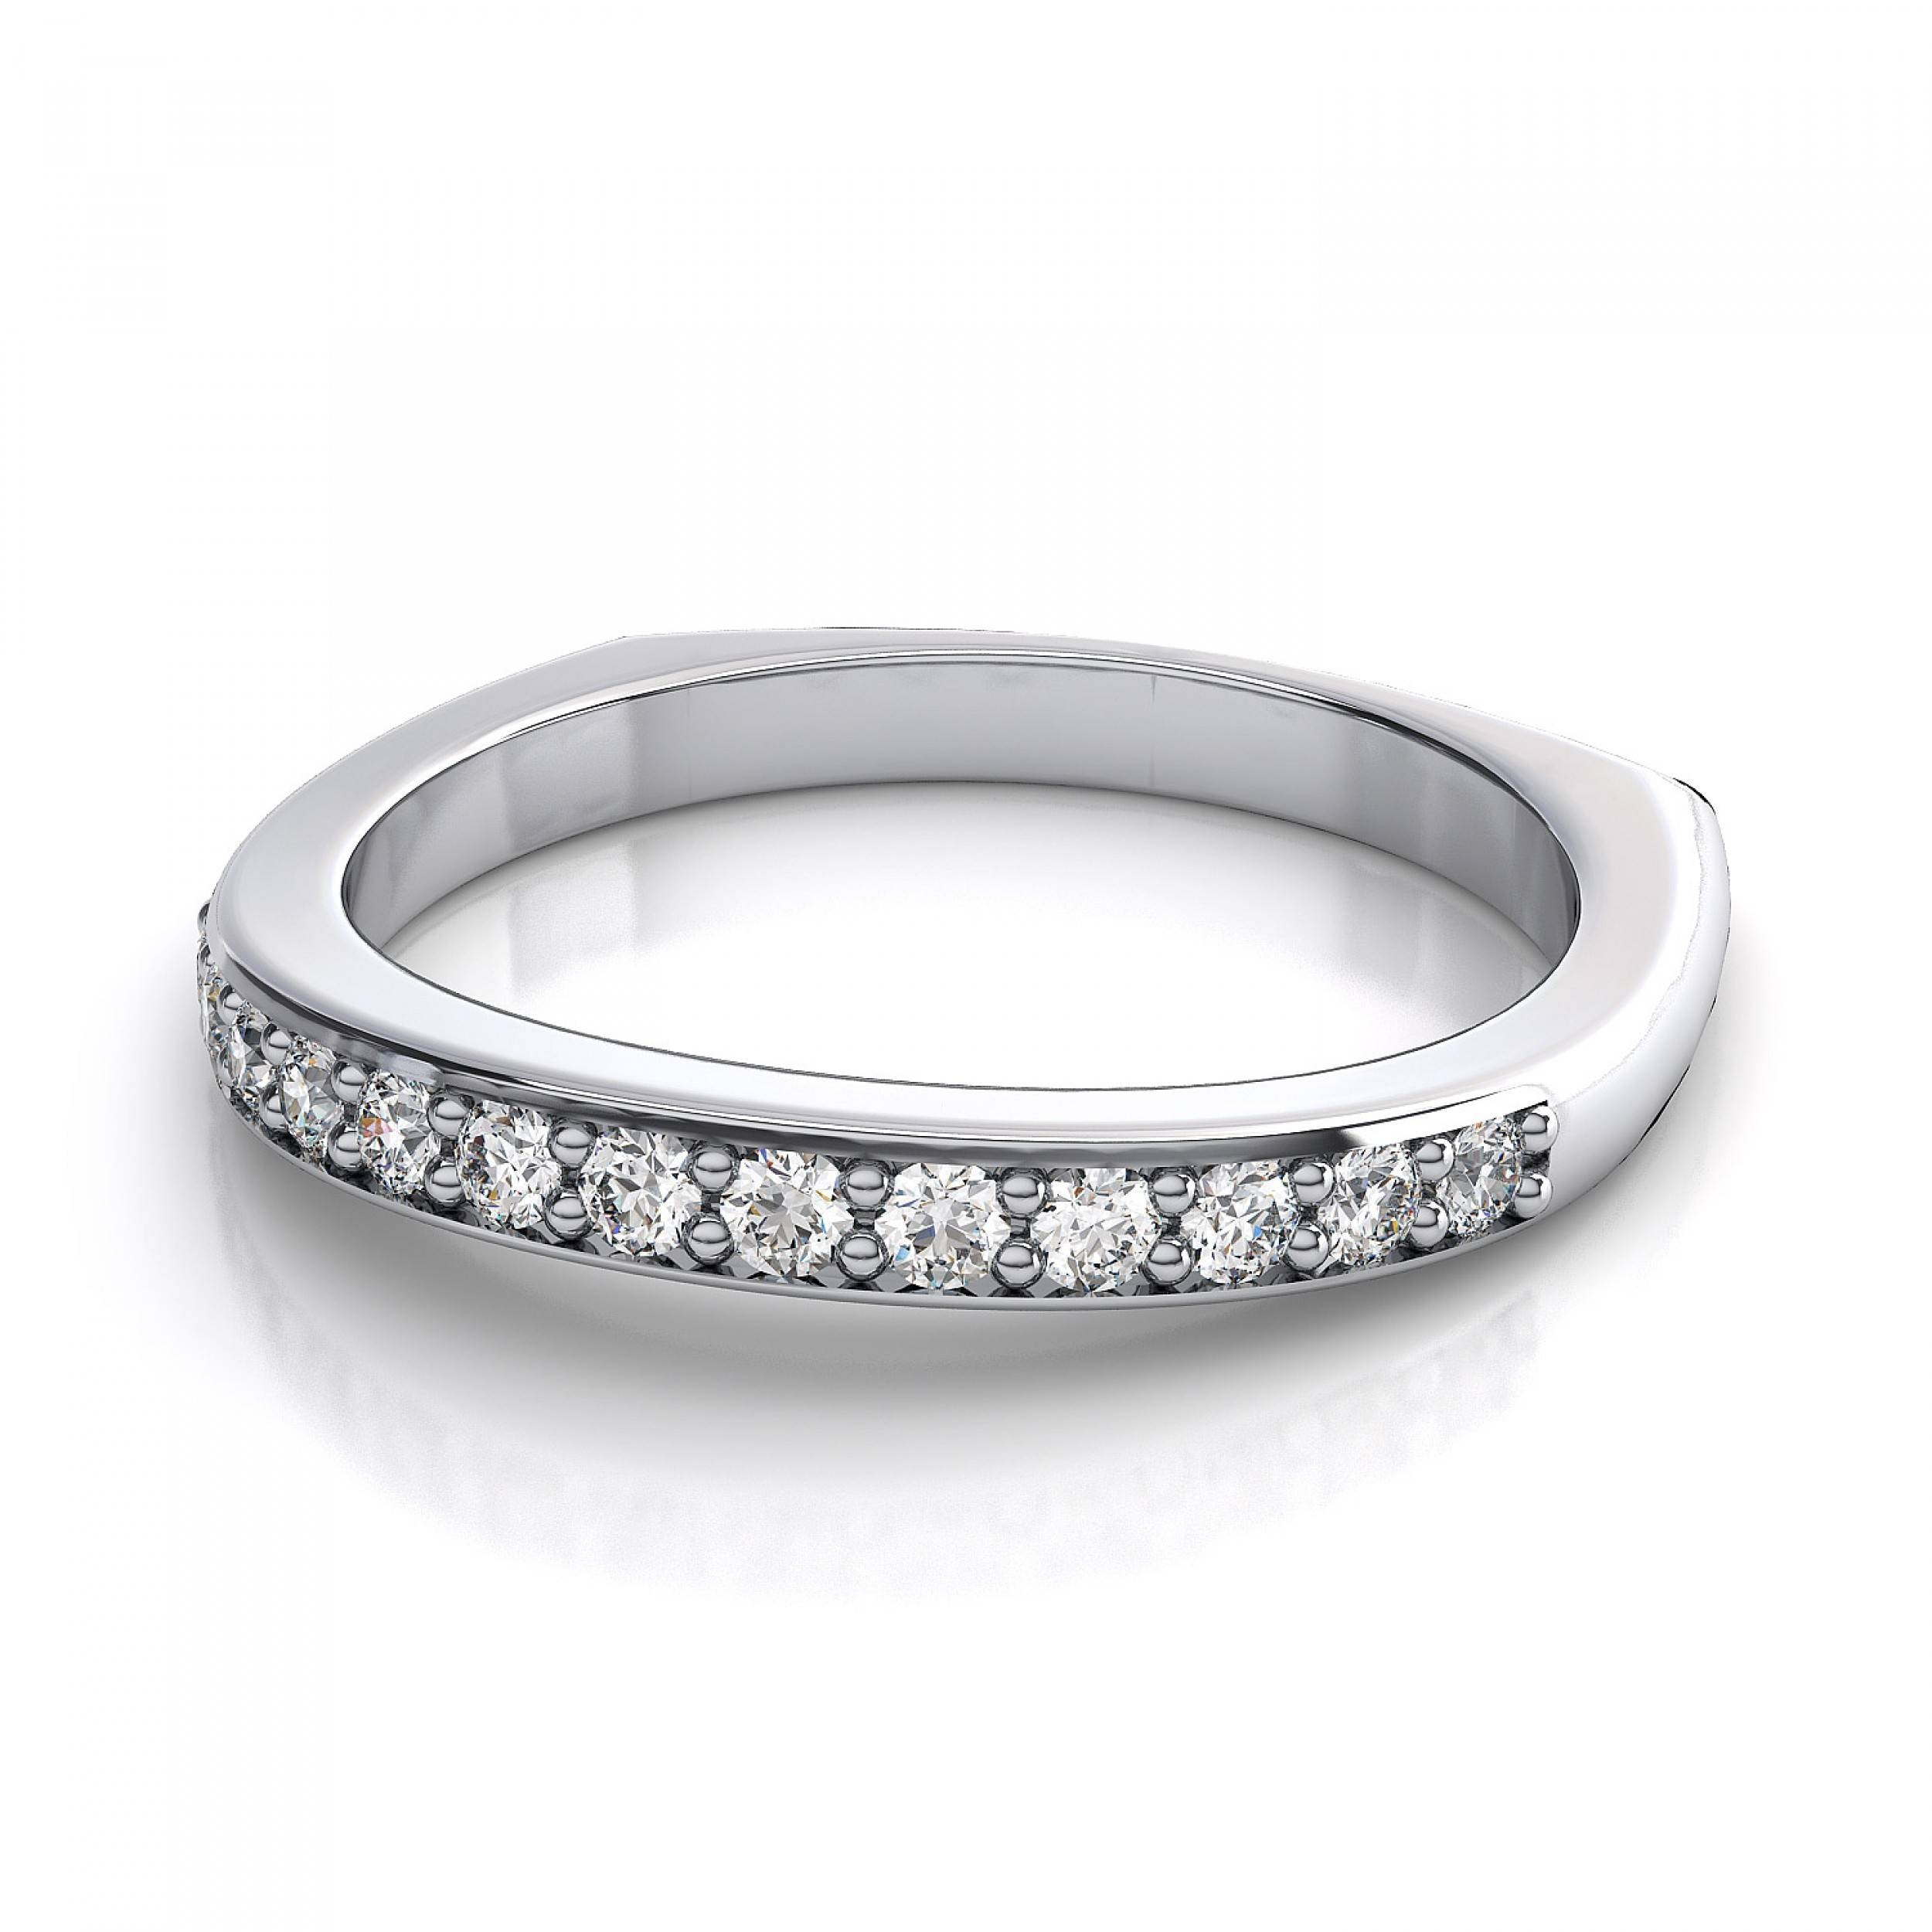 Wedding Rings : Thick Pave Wedding Band Womens Wedding Ring Sets Within Most Recently Released Thick White Gold Wedding Bands (View 10 of 15)